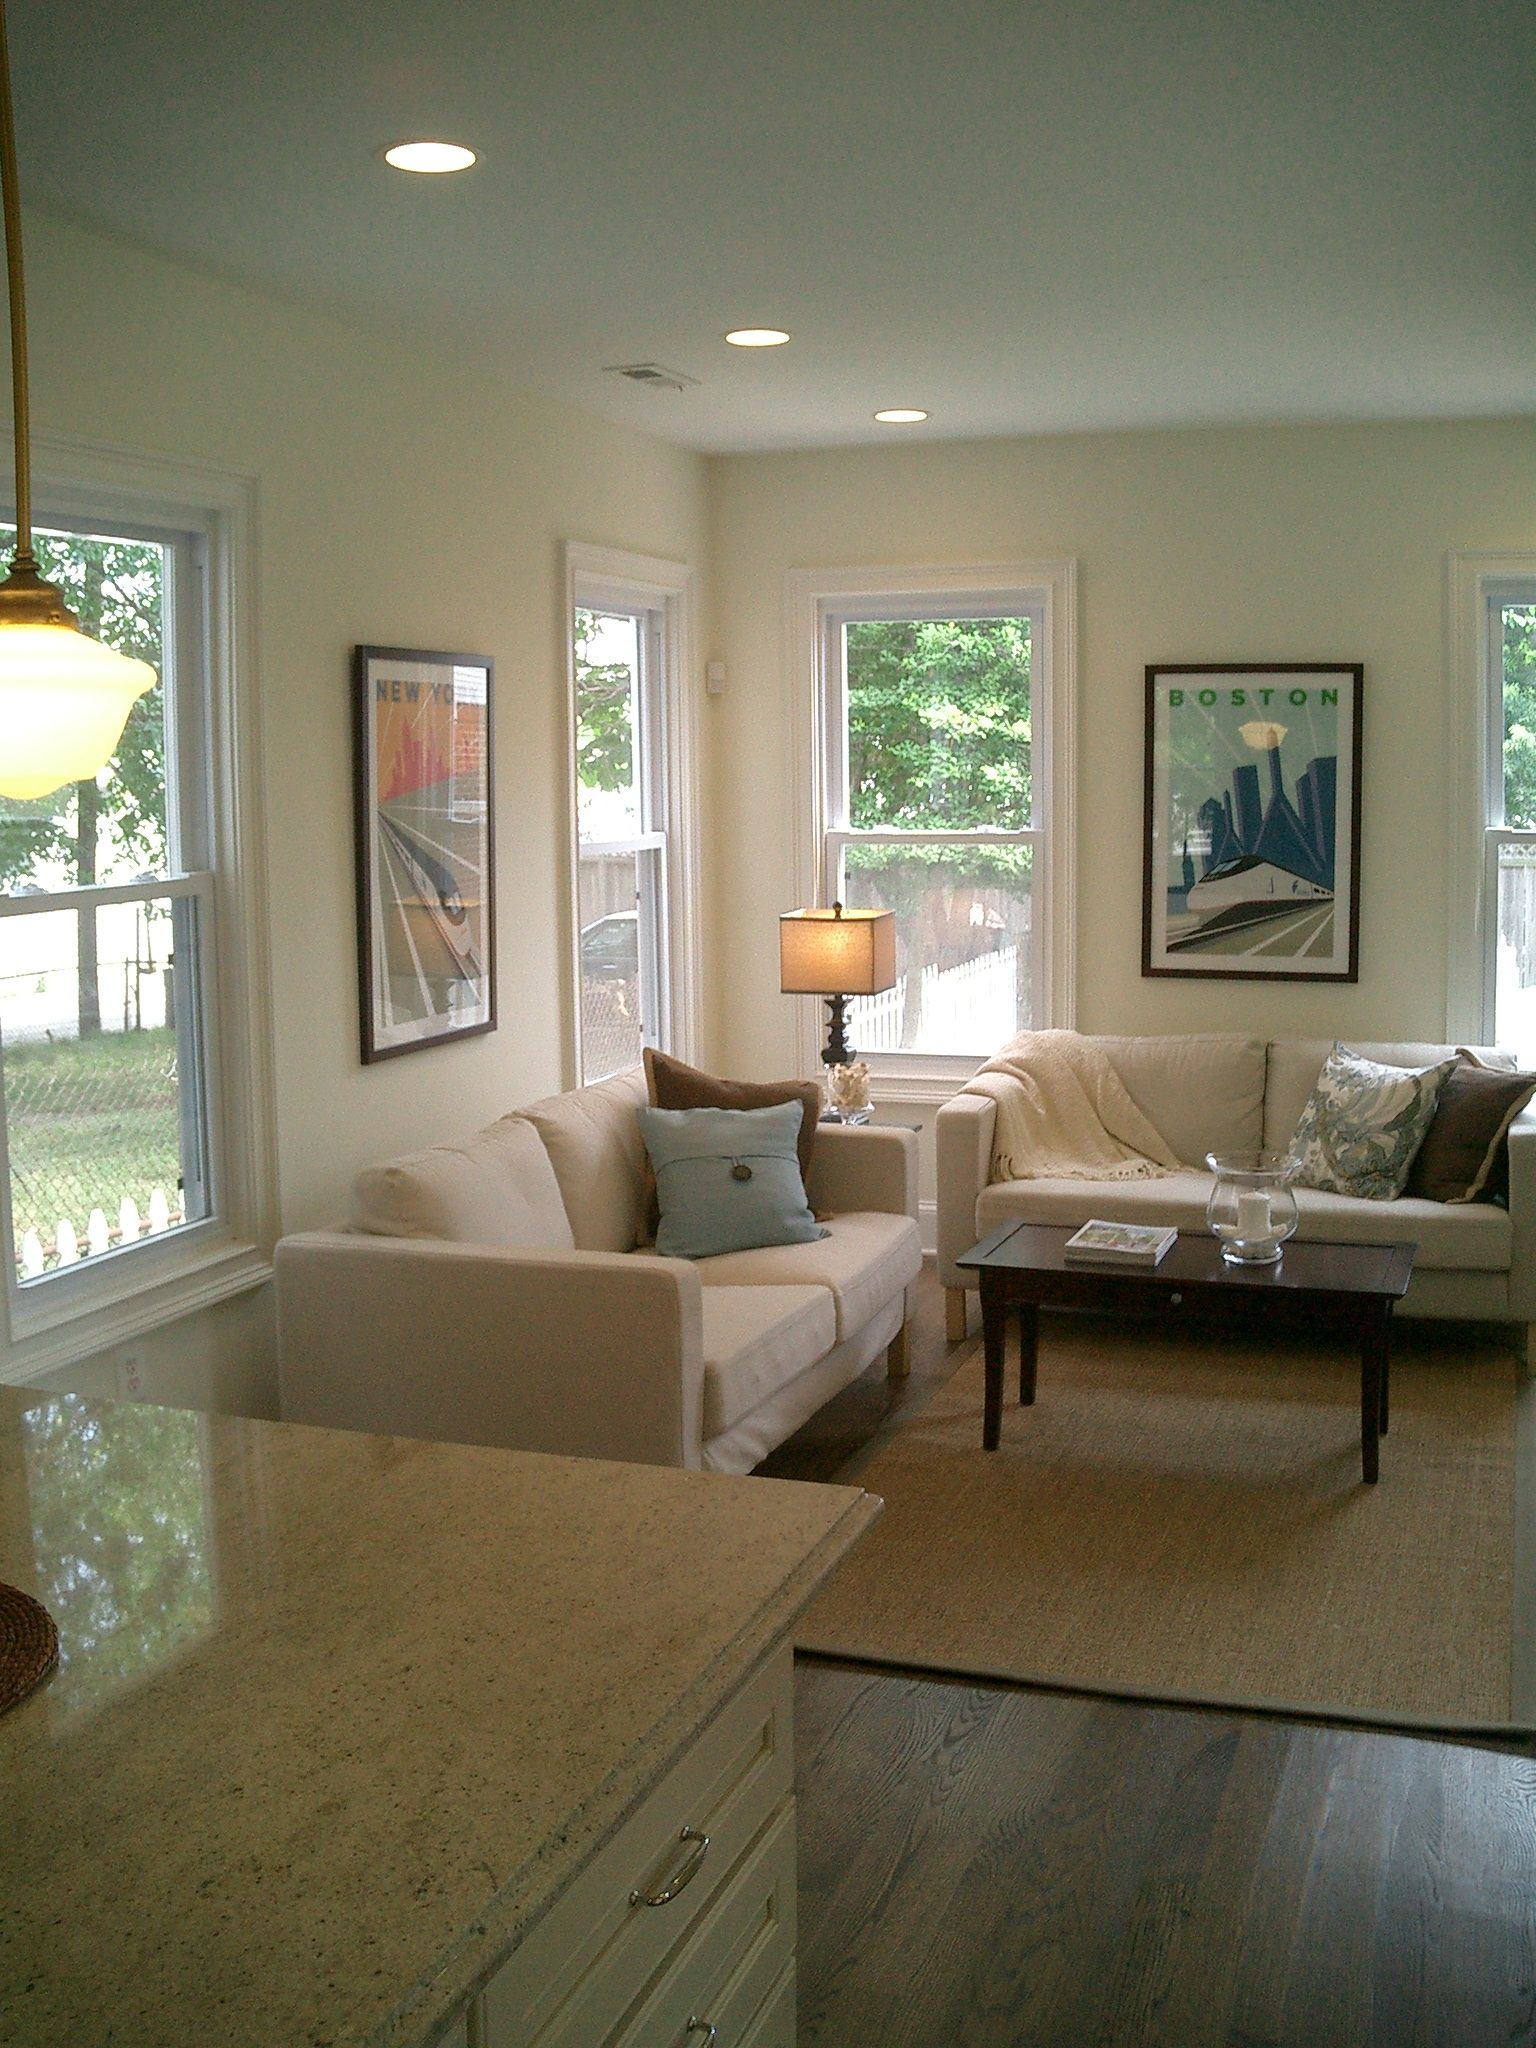 Benjamin moore ivory white 925 paint color for white walls that arent too yellow or too blue